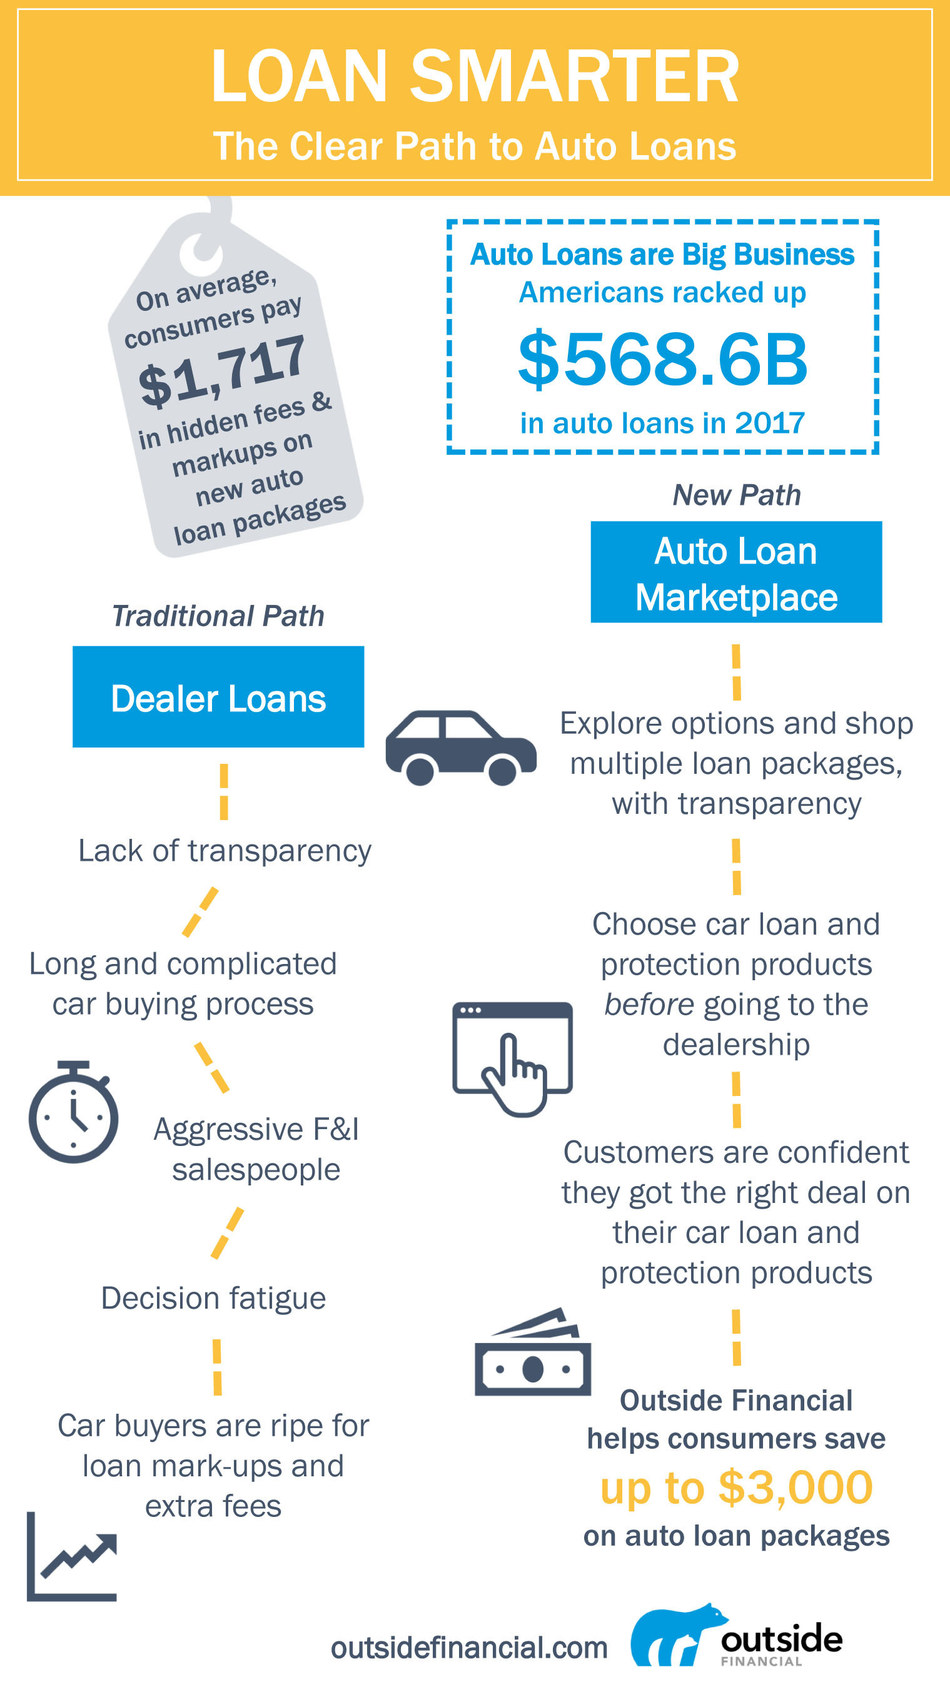 Outside Financial Launches to Help Consumers Save up to $3,000 on Auto Loan Packages